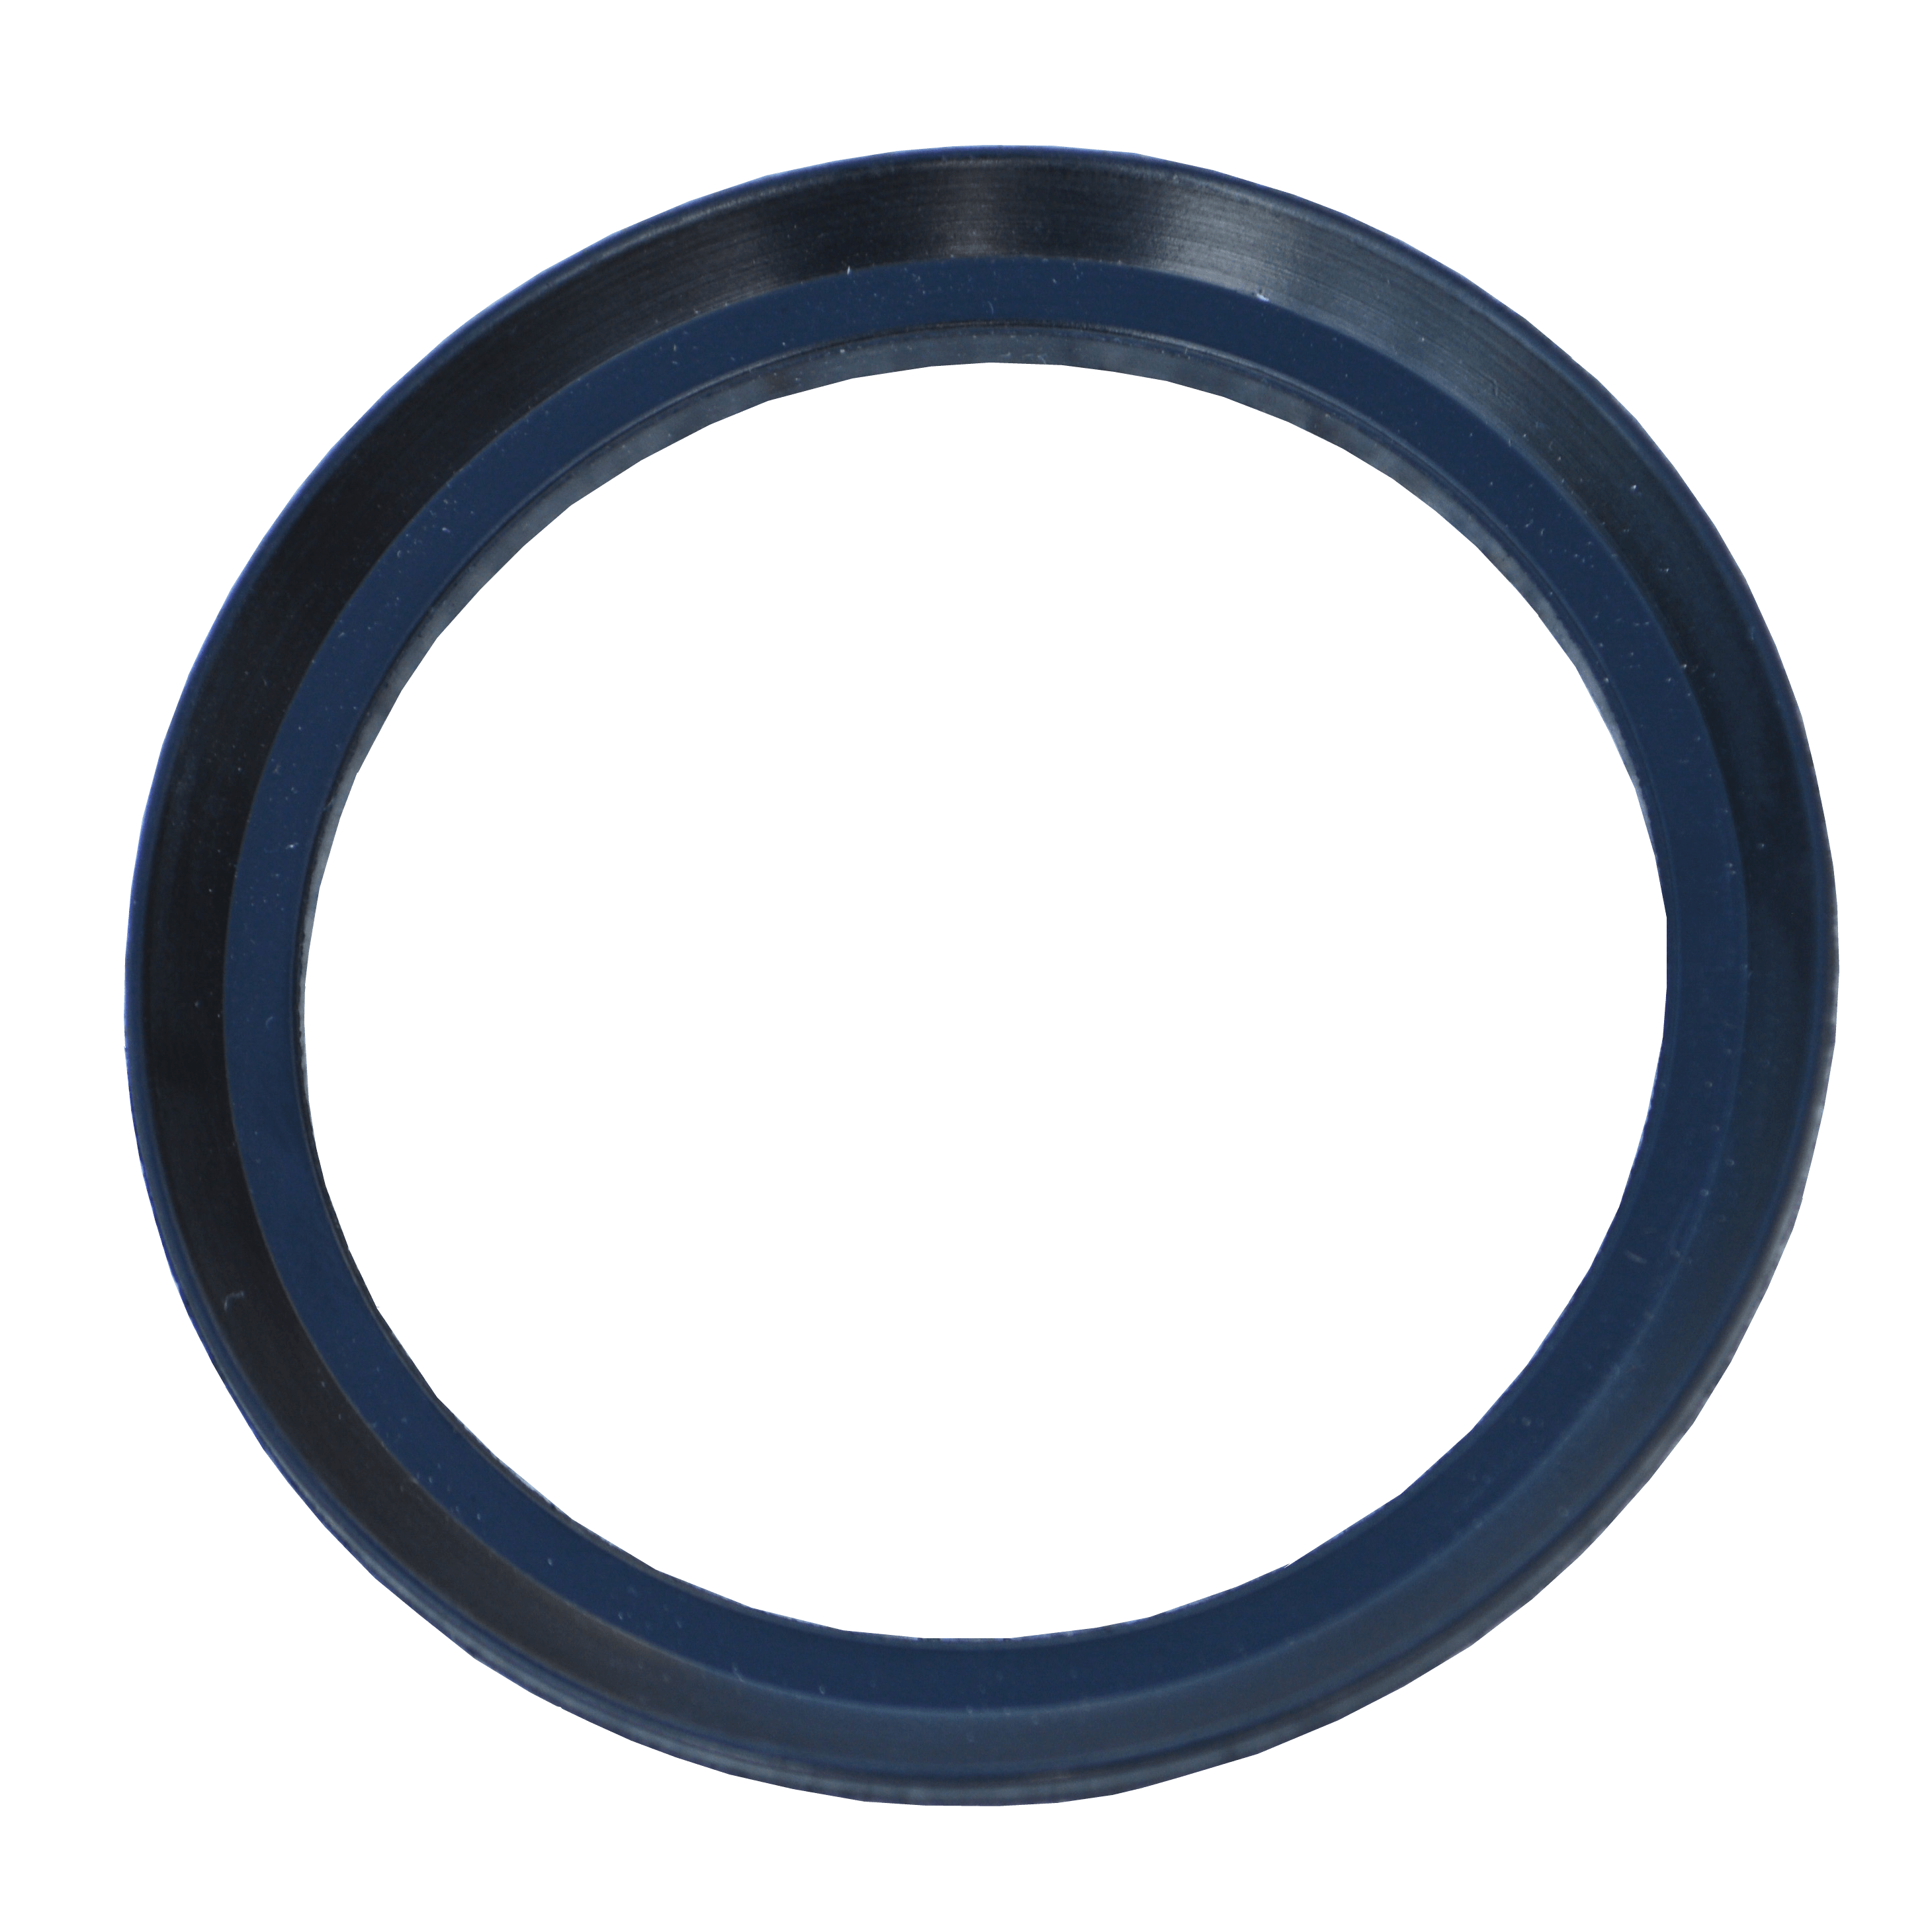 40BS-S Bevel Seat Gasket FDA Compliant PTFE